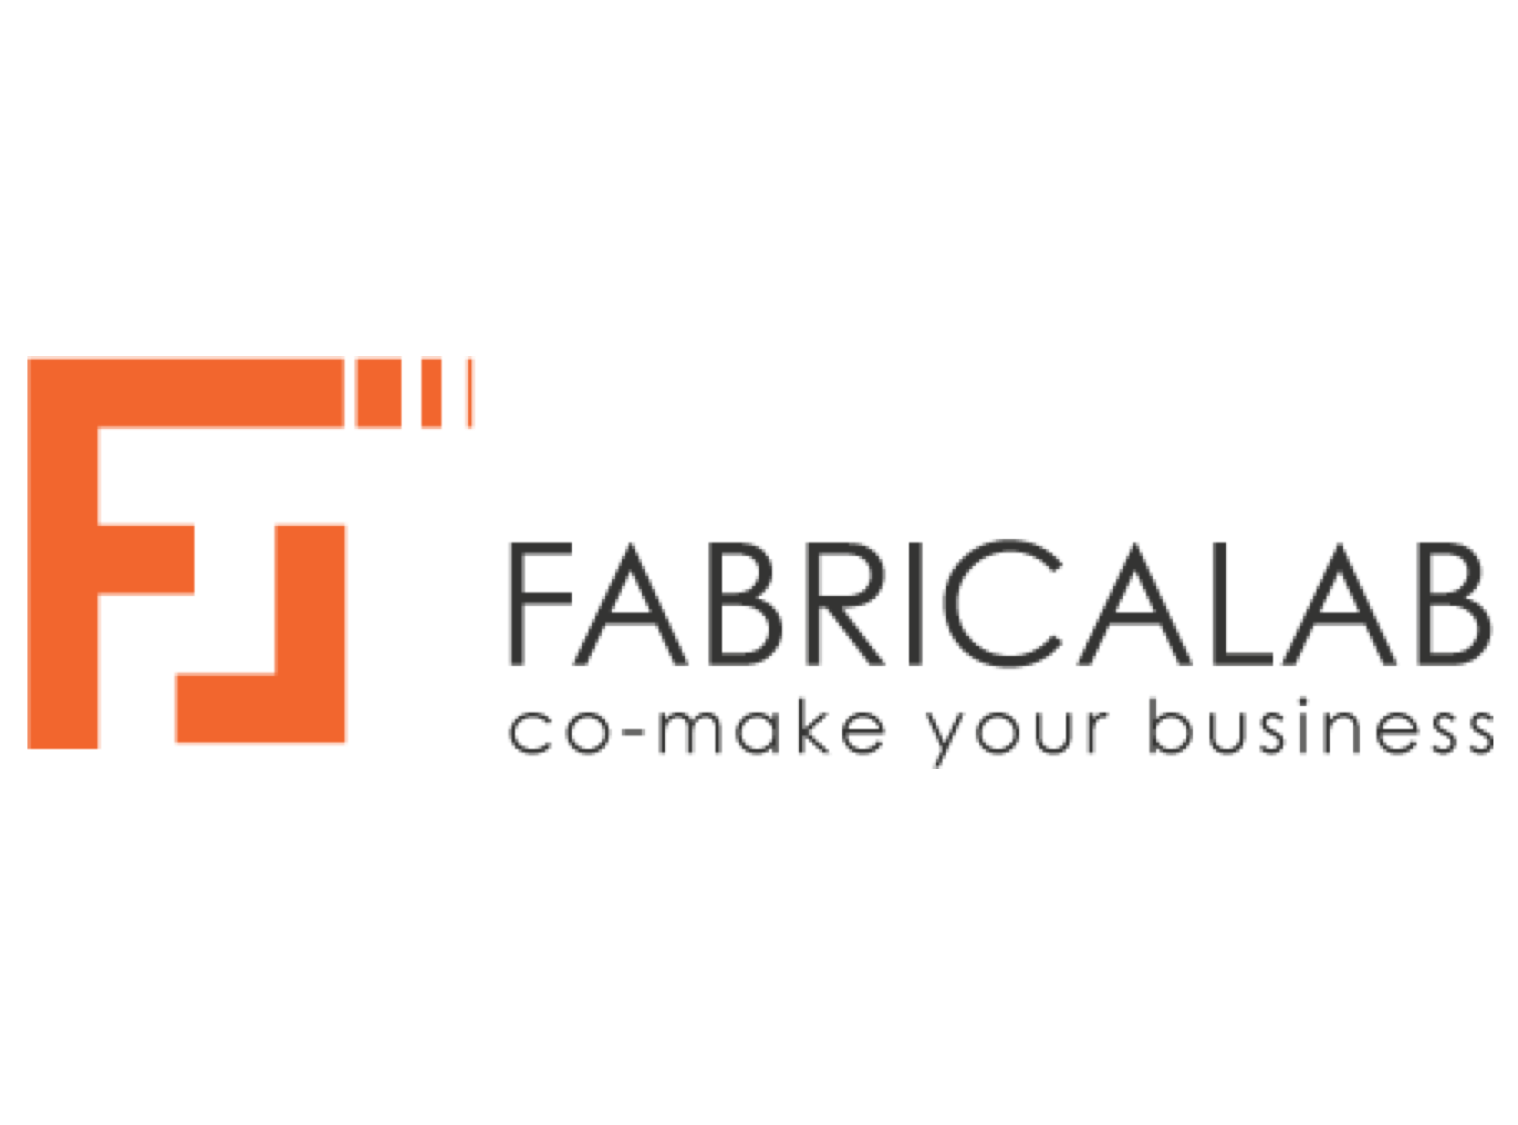 FabricaLab Group